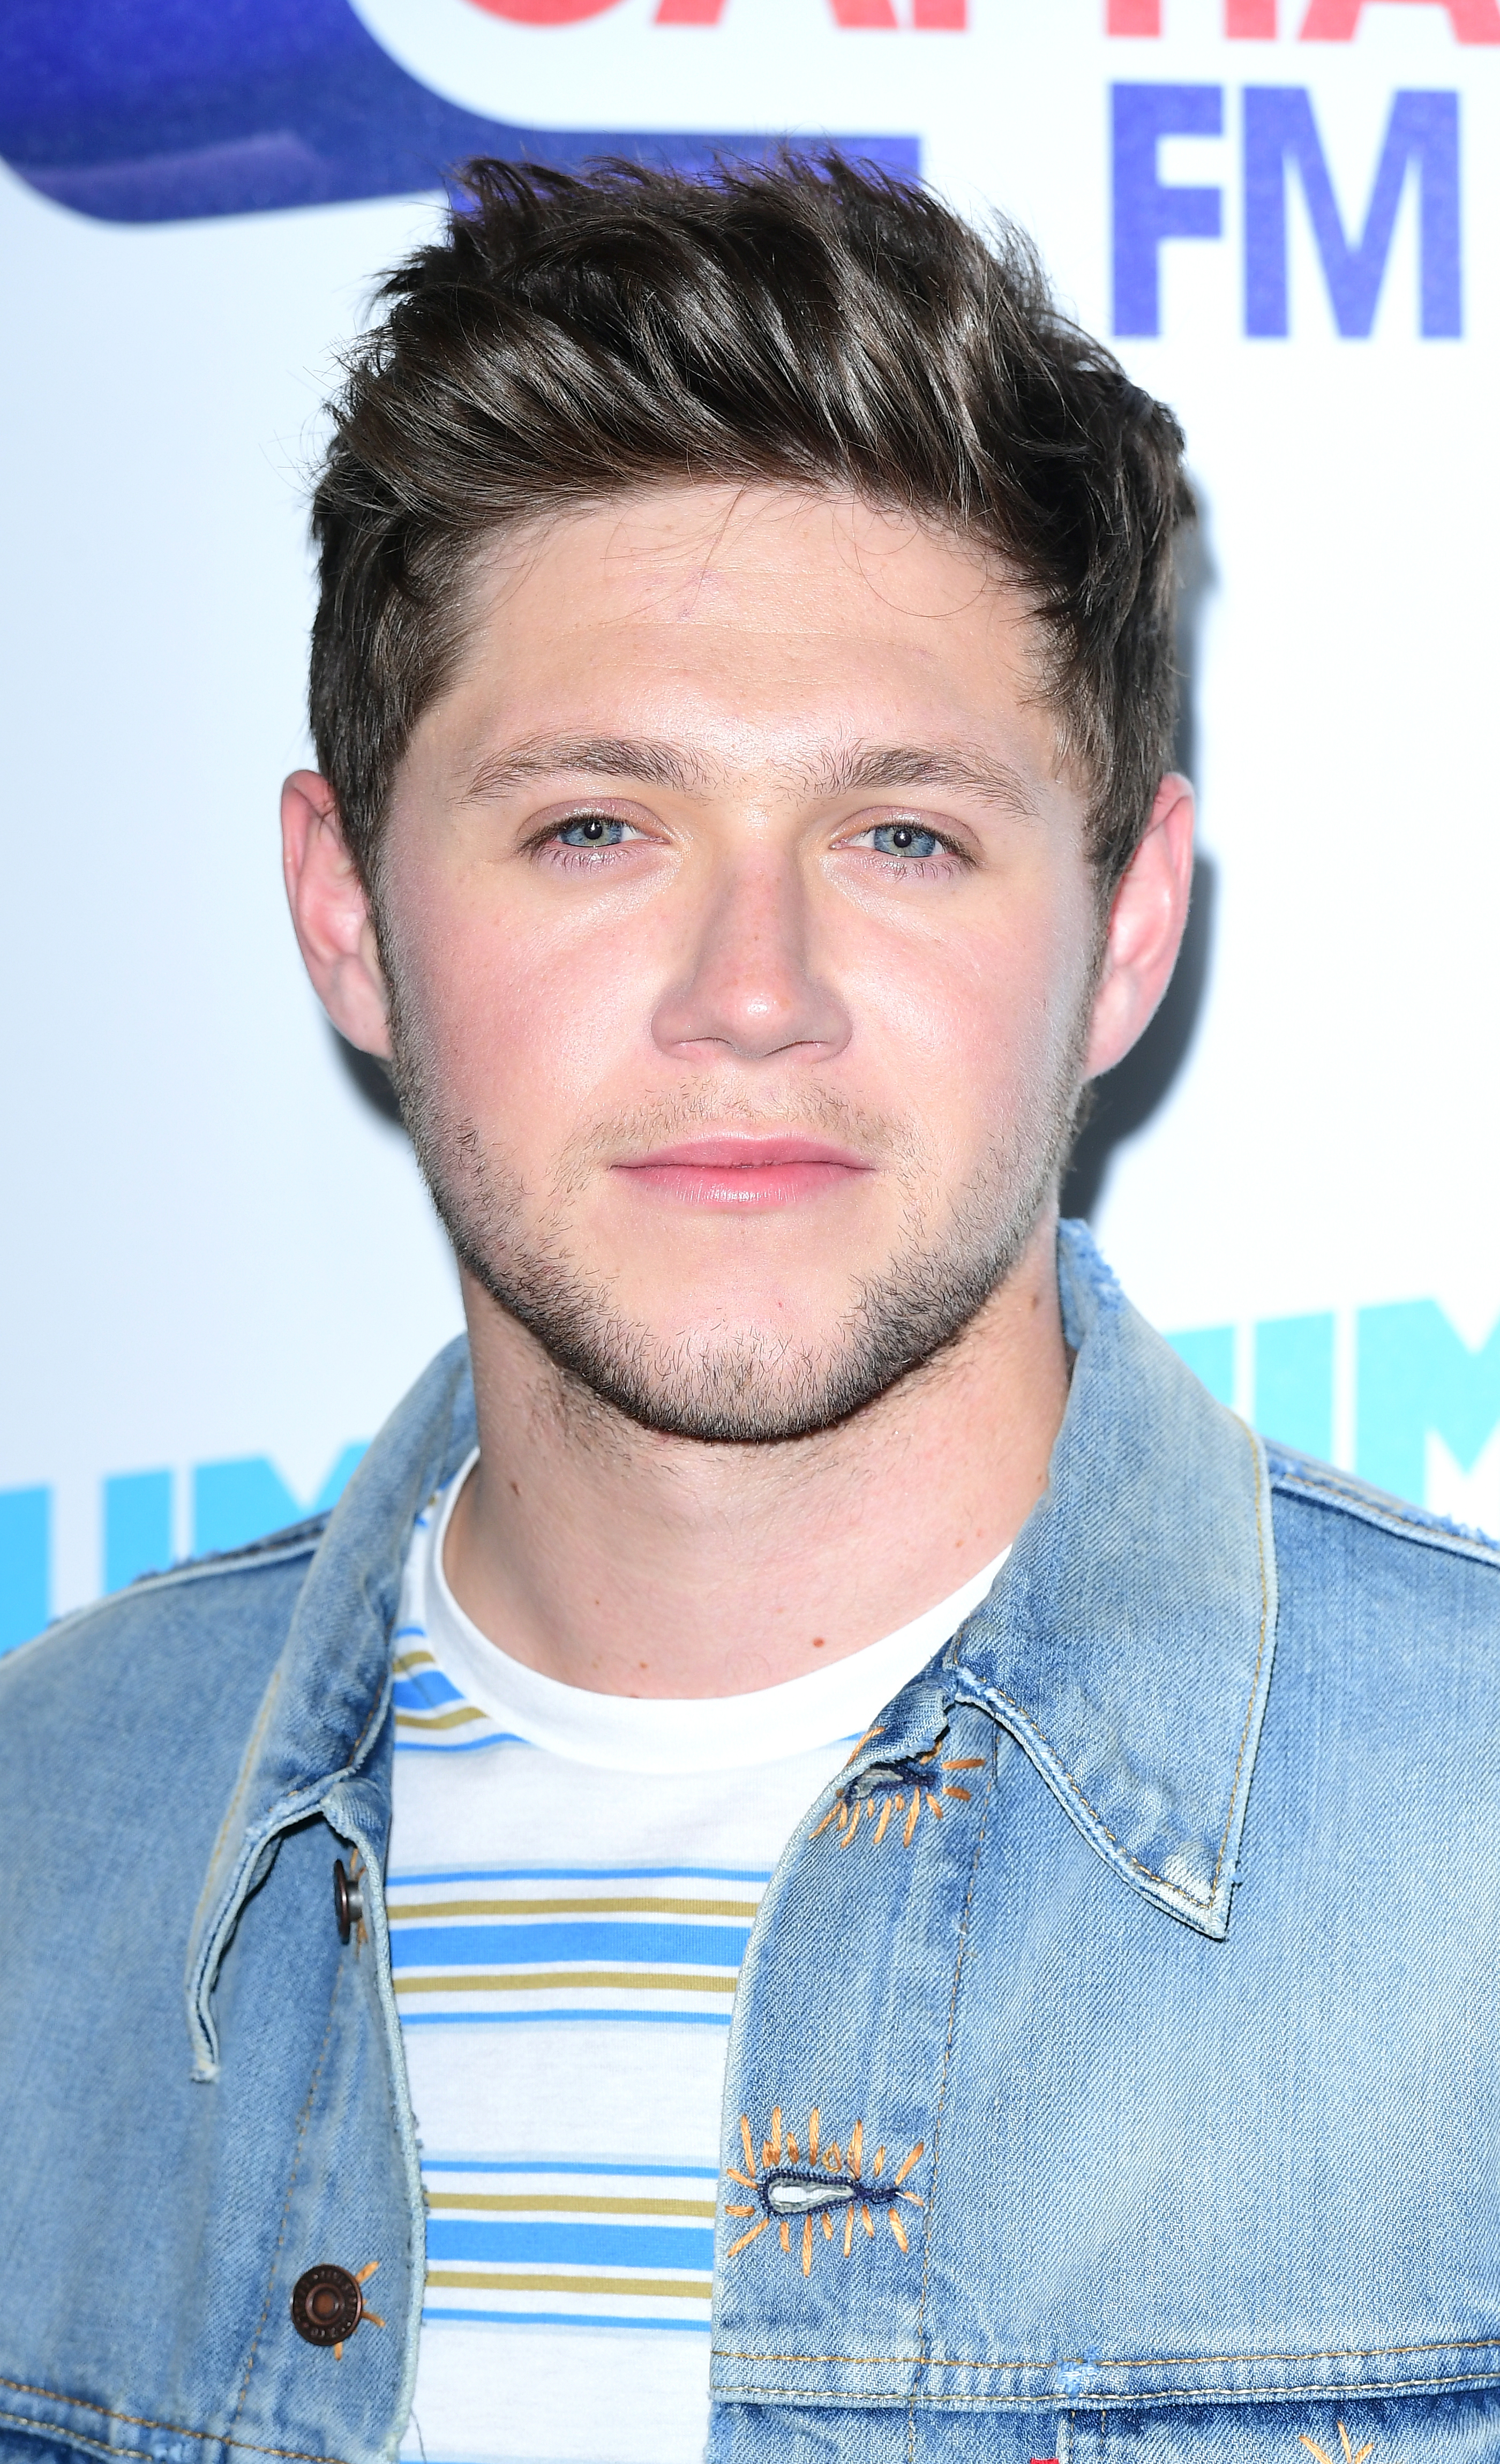 Niall Horan at Capital's Summertime Ball 2017